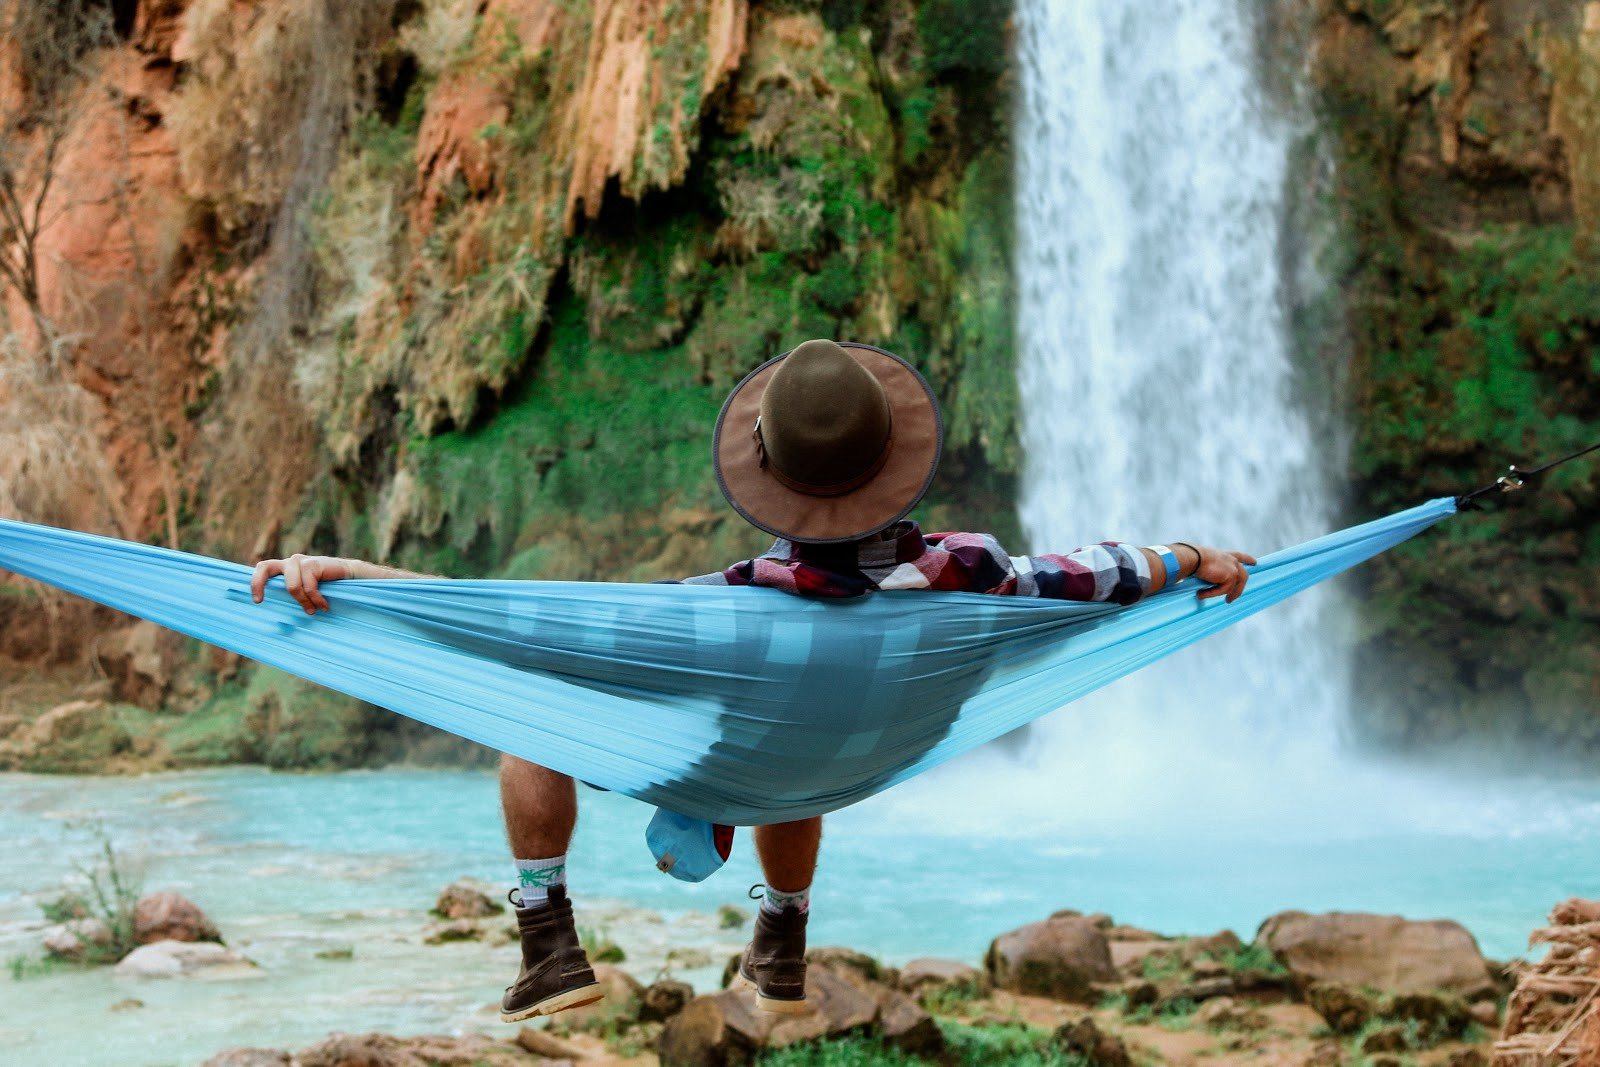 A man sitting in a hammock facing away from the camera and towards a waterfall.